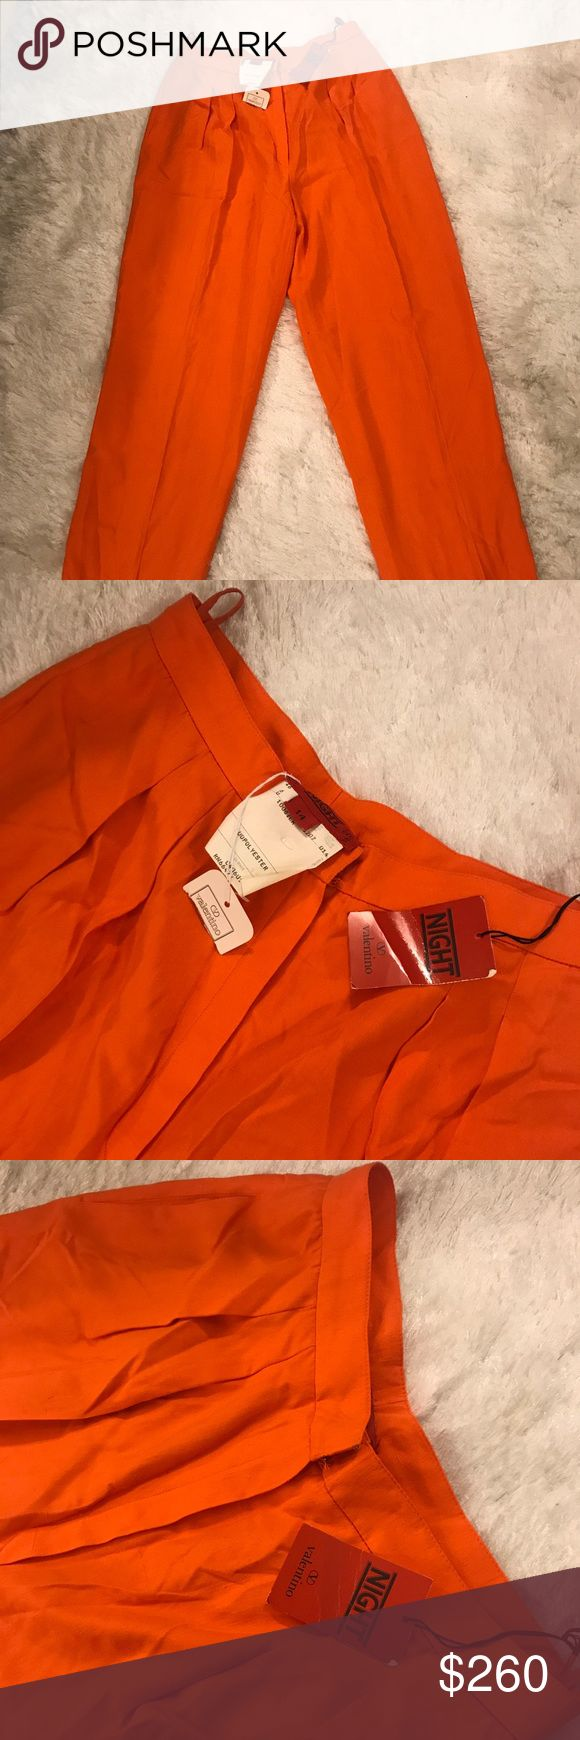 """Valentino Night high waisted orange trouser pants Valentino Night high waisted 100% silk with polyester lining orange wide leg trouser pants - great statement pant vintage collection new with tags! Note it says """"size 14"""" on the tags but fits approximately a women's US size 6 Valentino Pants Trousers"""